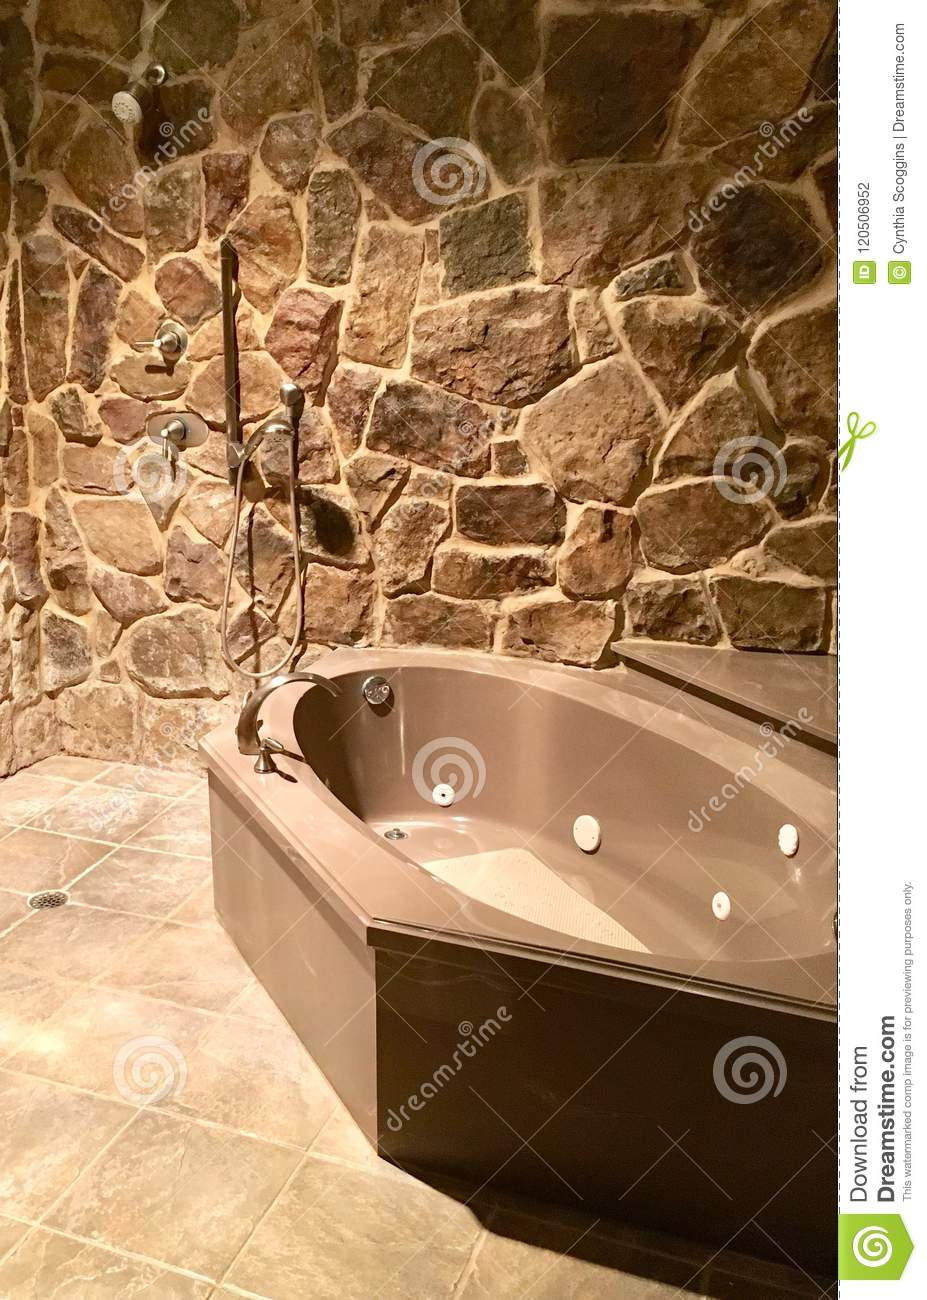 Stone Shower Bathtub Stock Photo Image Of Shower 120506952